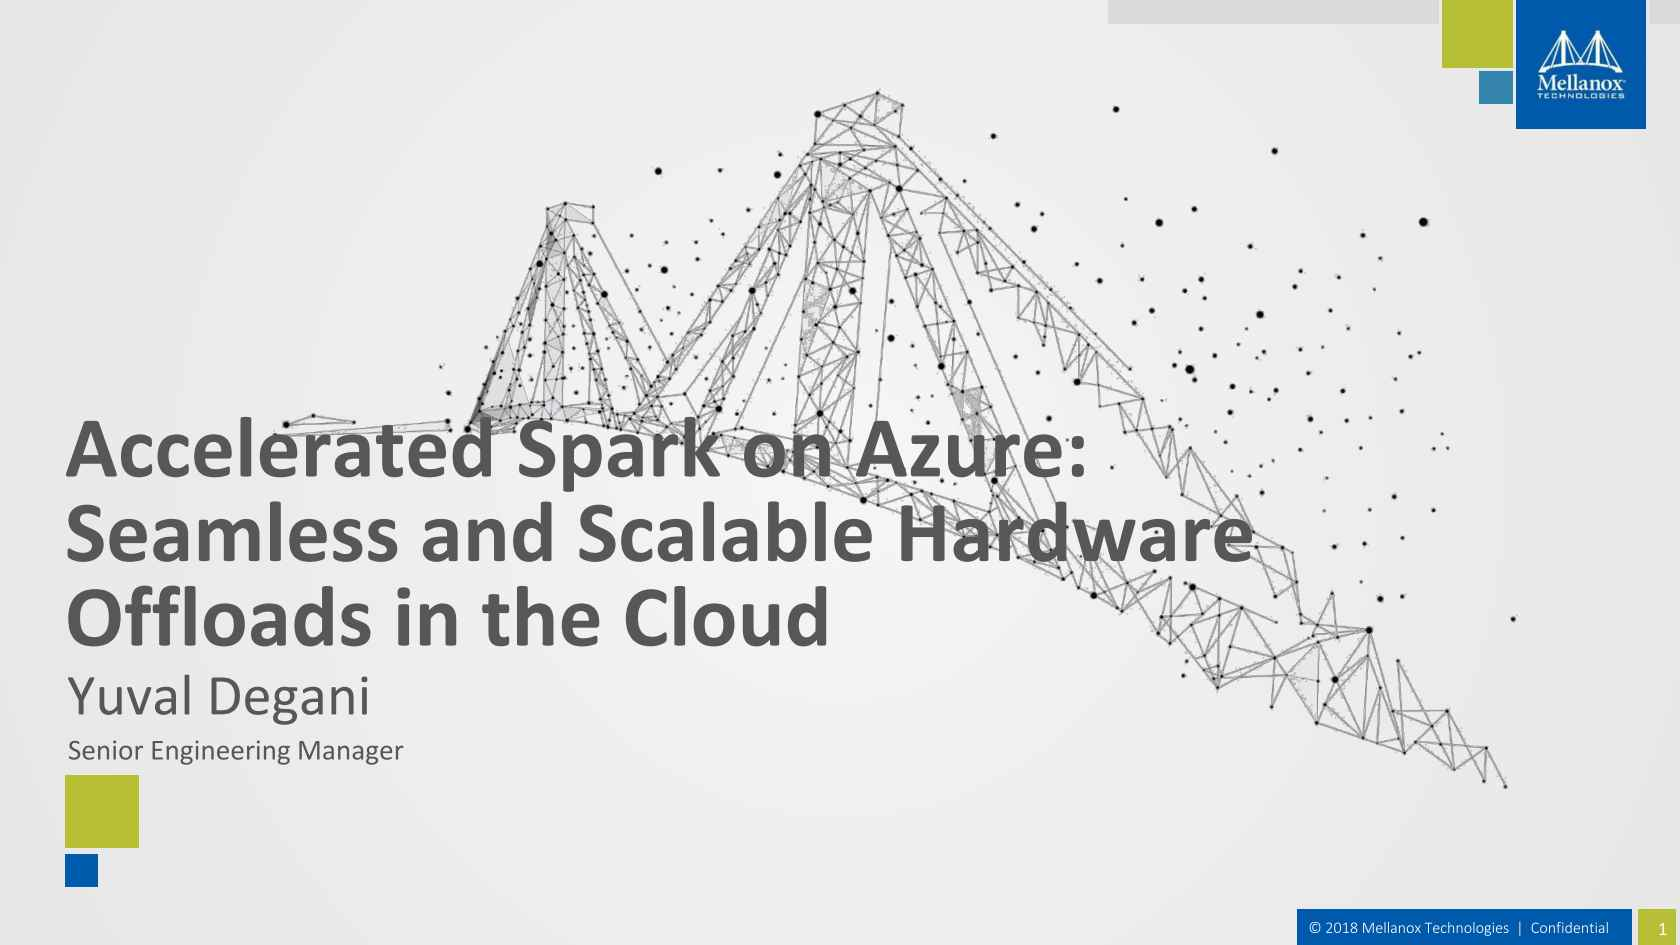 Accelerated Spark on Azure: Seamless and Scalable Hardware Offloads